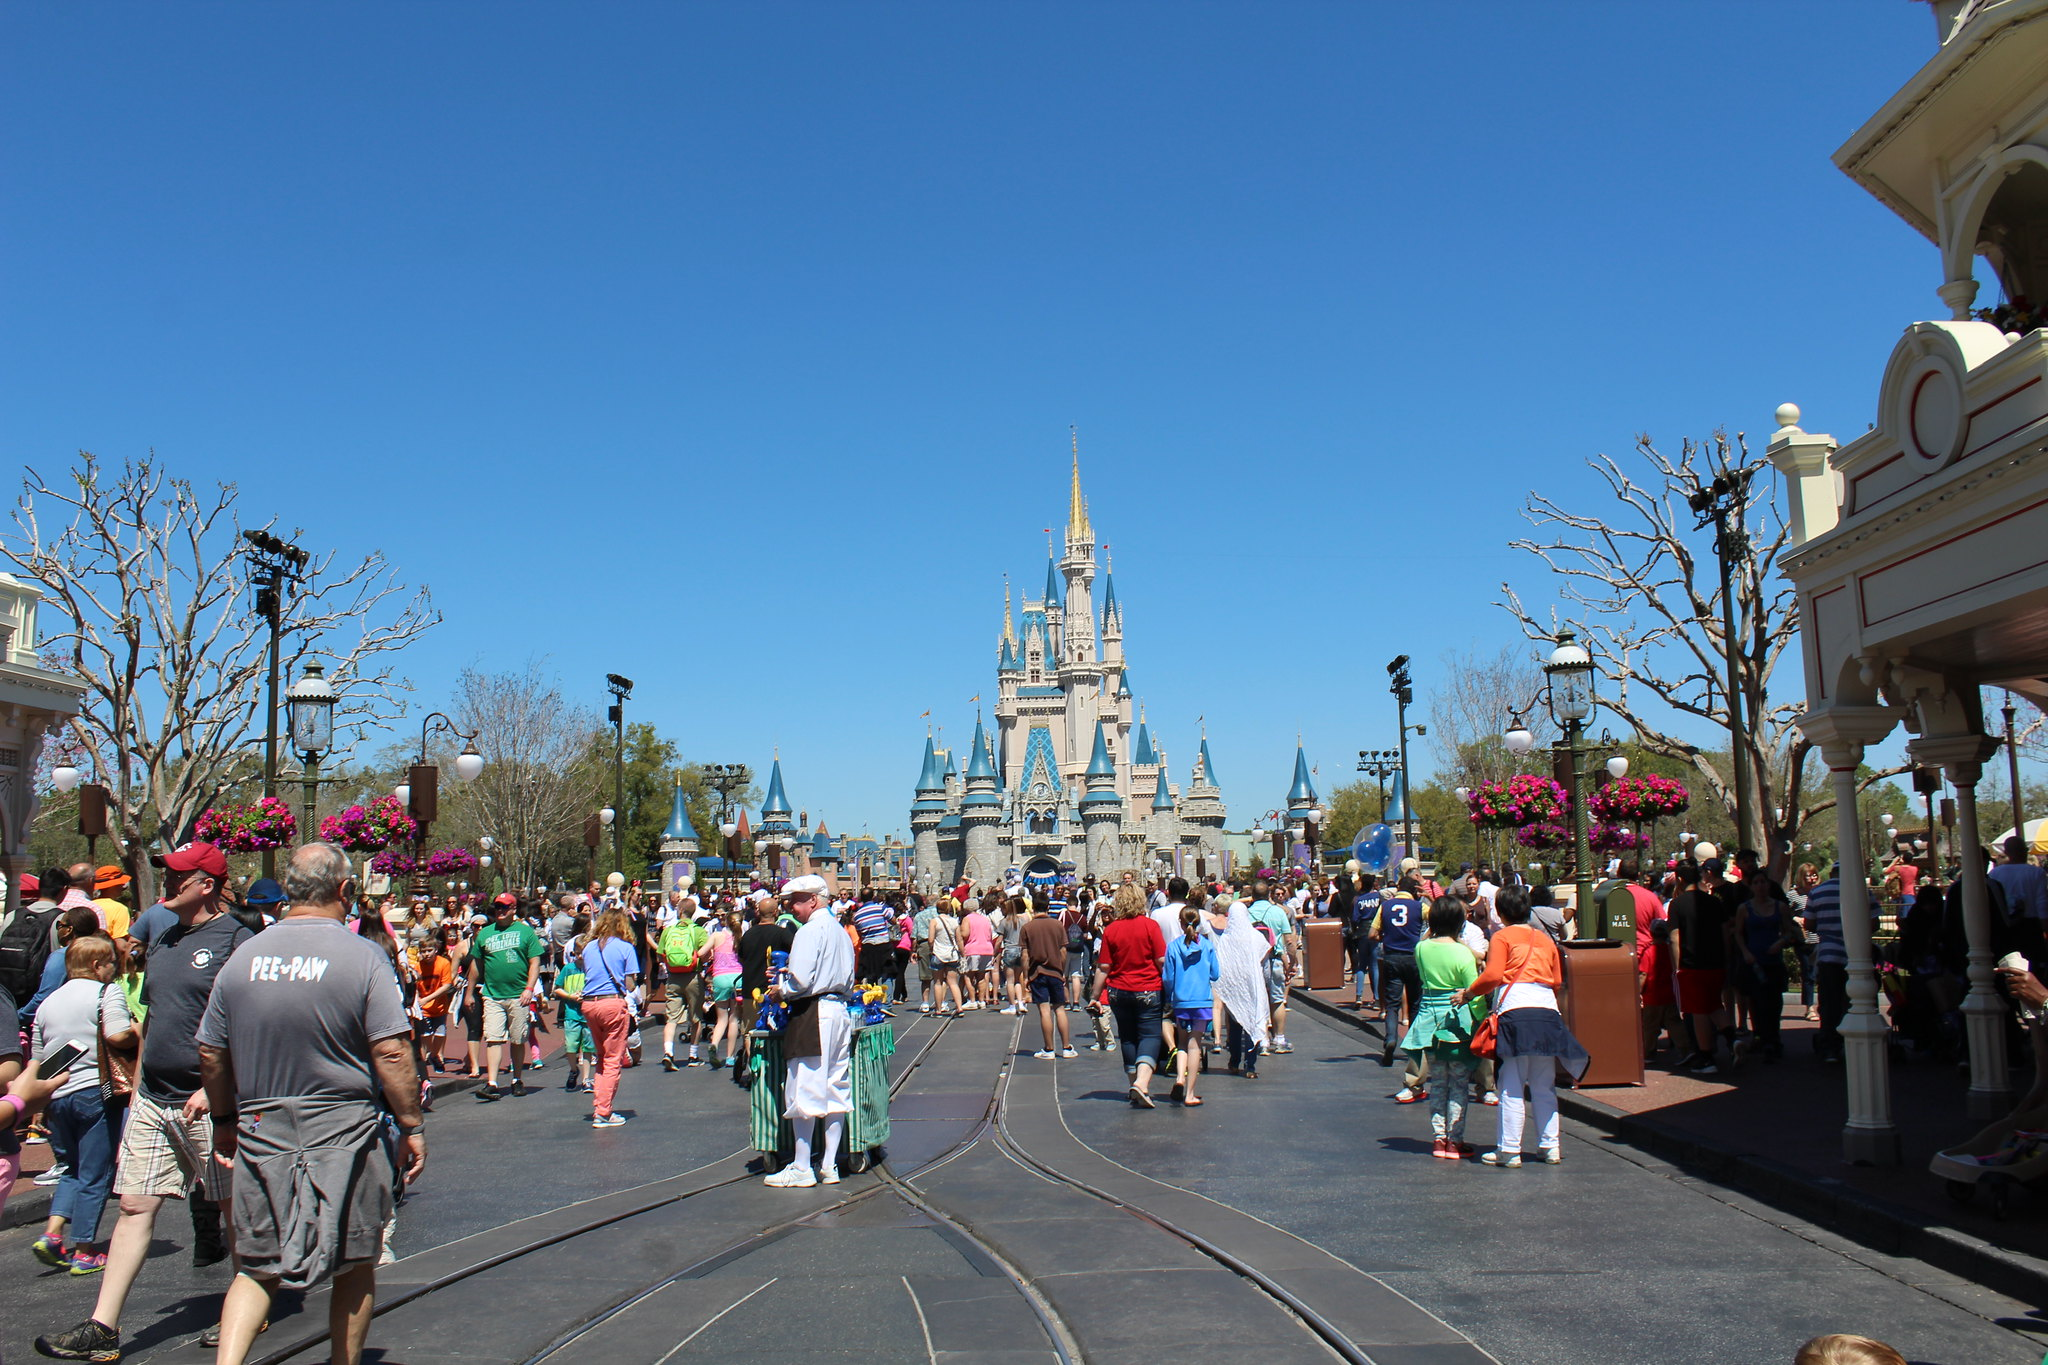 Main Street, Walt Disney World